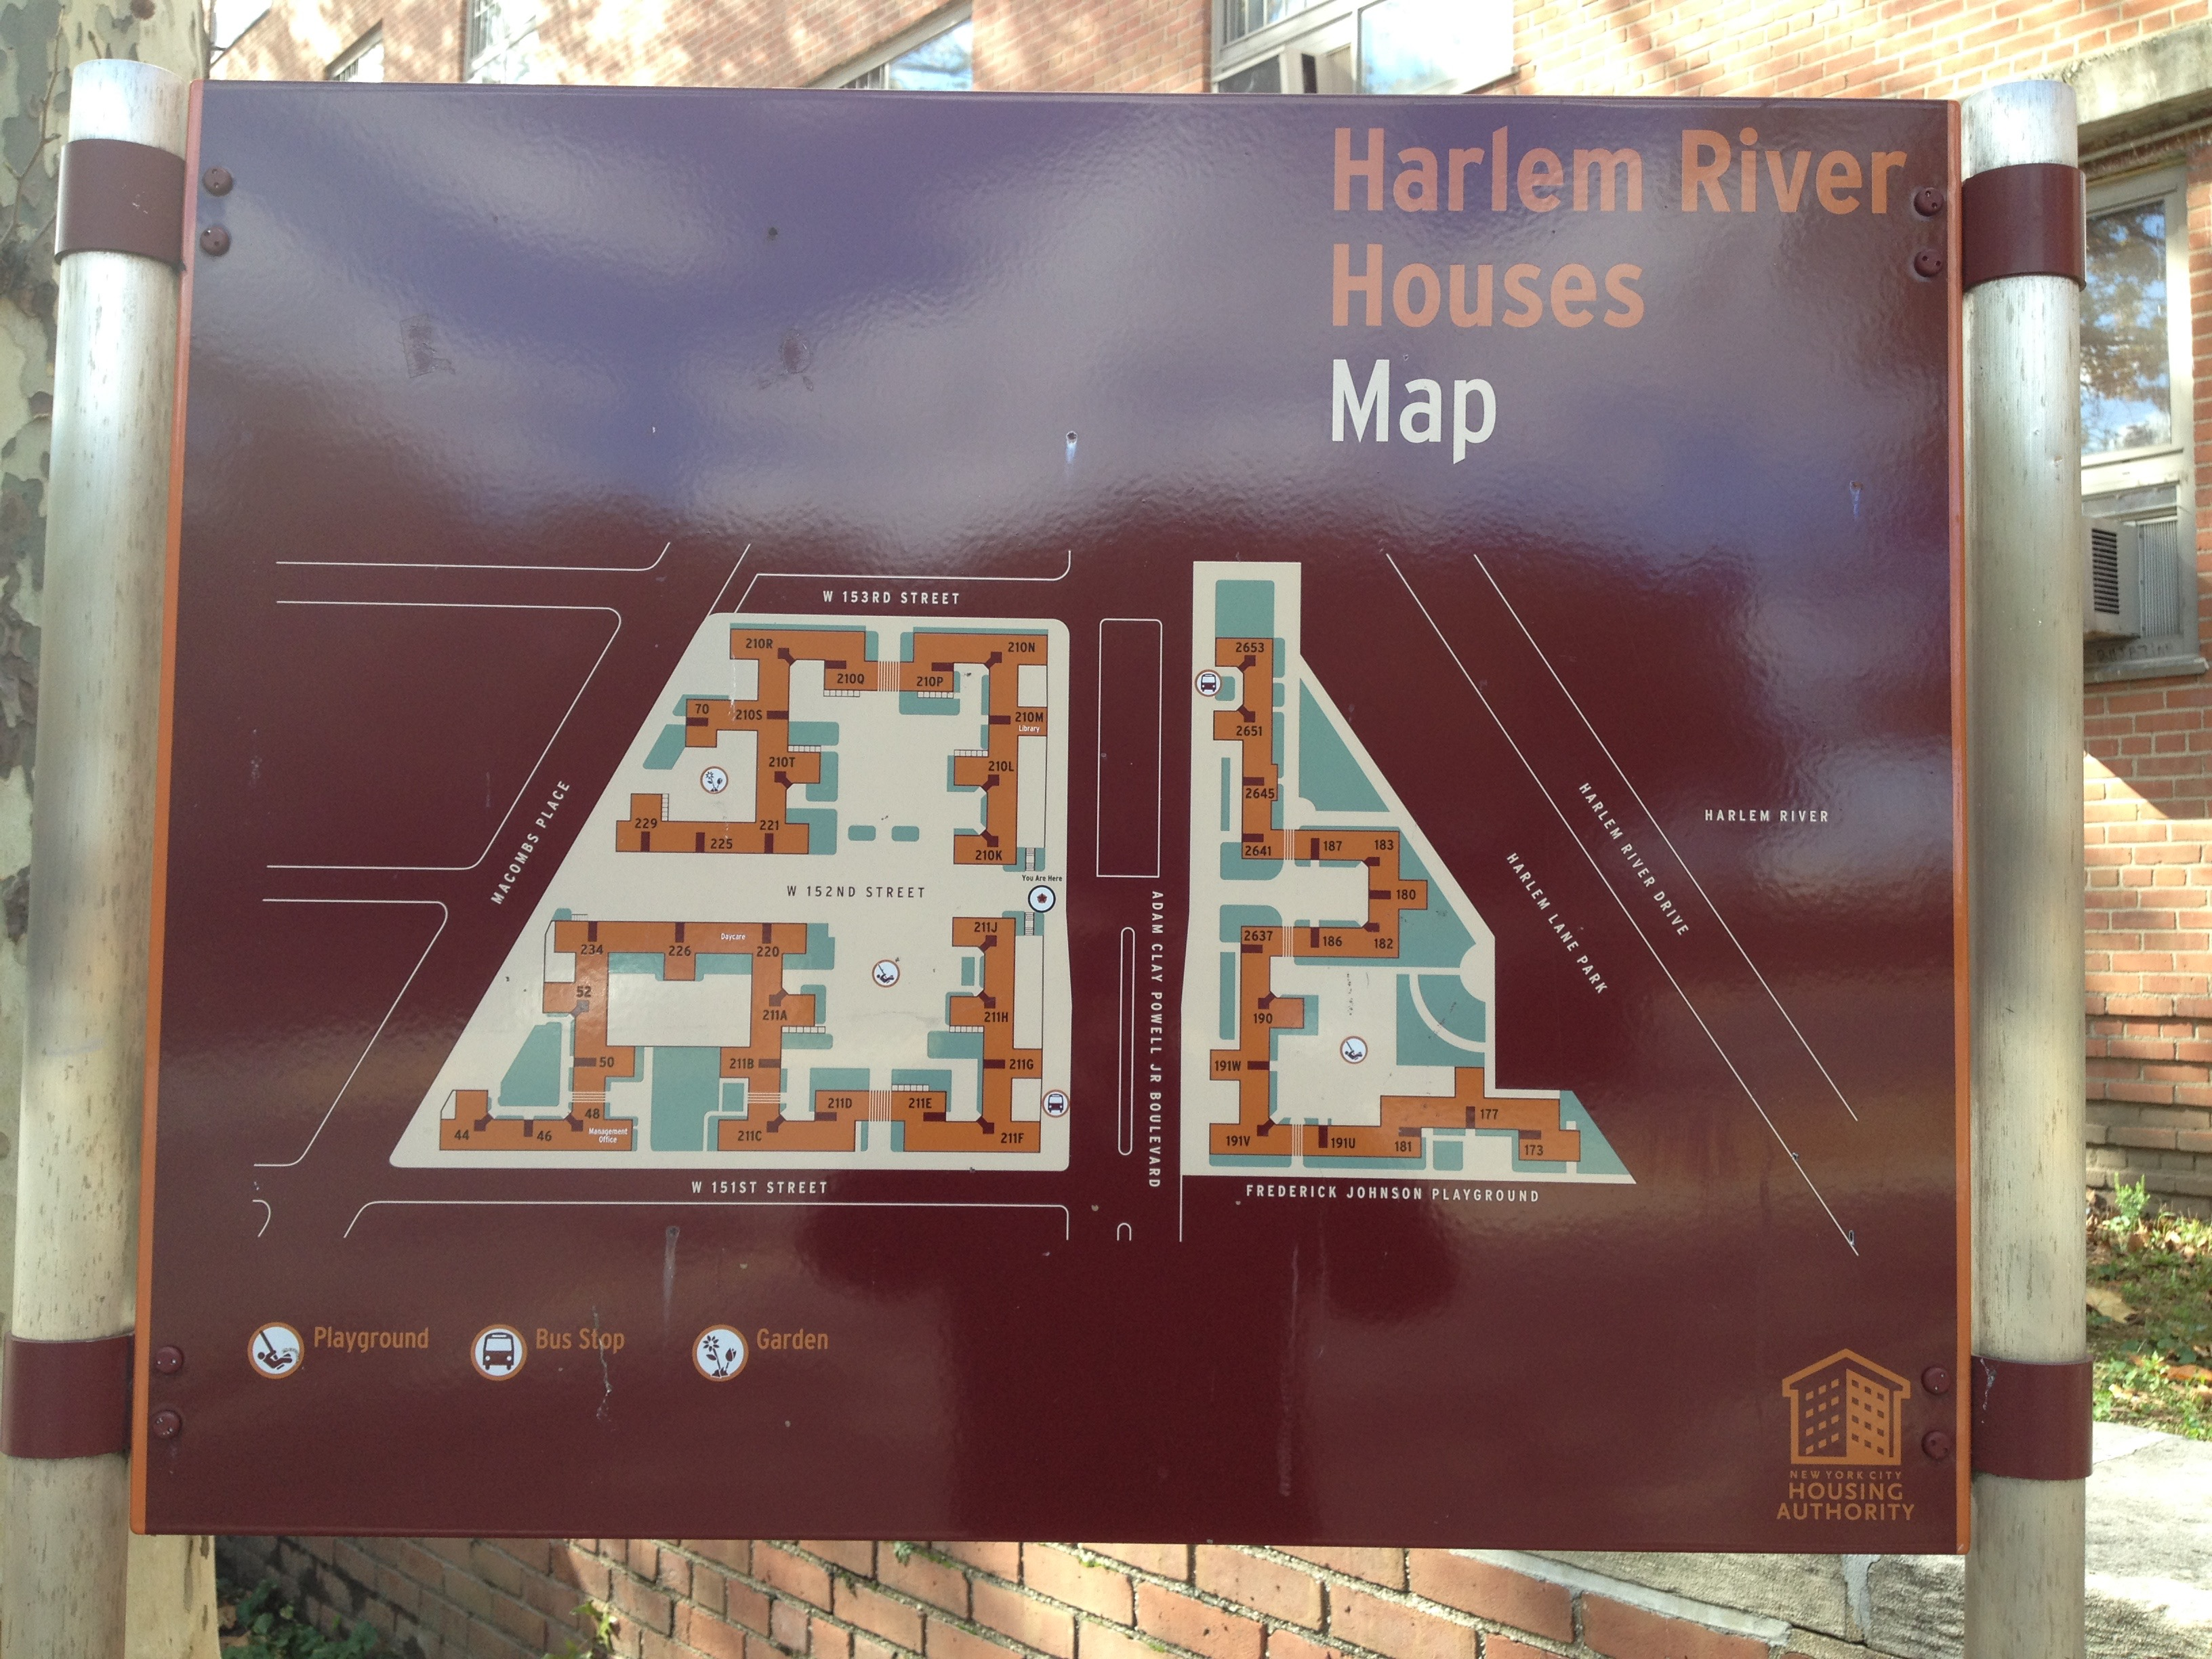 A map of the Harlem River Houses. The white space is public space for the residents. From the map, it is clear that the Harlem River Houses is mostly public space, with the housing units lining the perimeter of the lot.